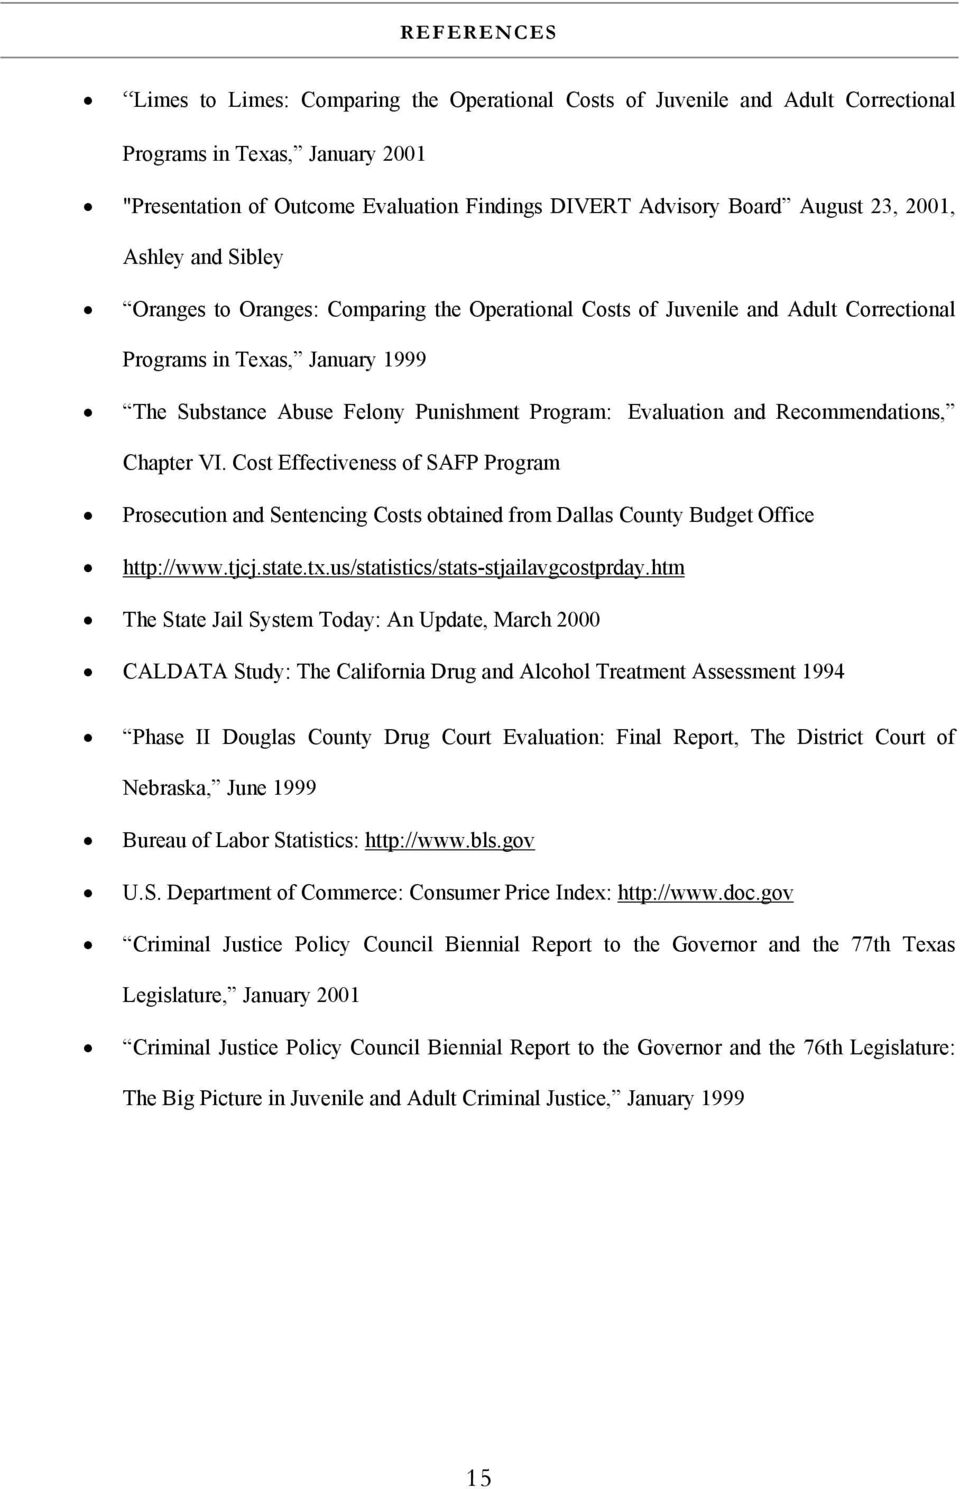 Evaluation and Recommendations, Chapter VI. Cost Effectiveness of SAFP Program Prosecution and Sentencing Costs obtained from Dallas County Budget Office http://www.tjcj.state.tx.